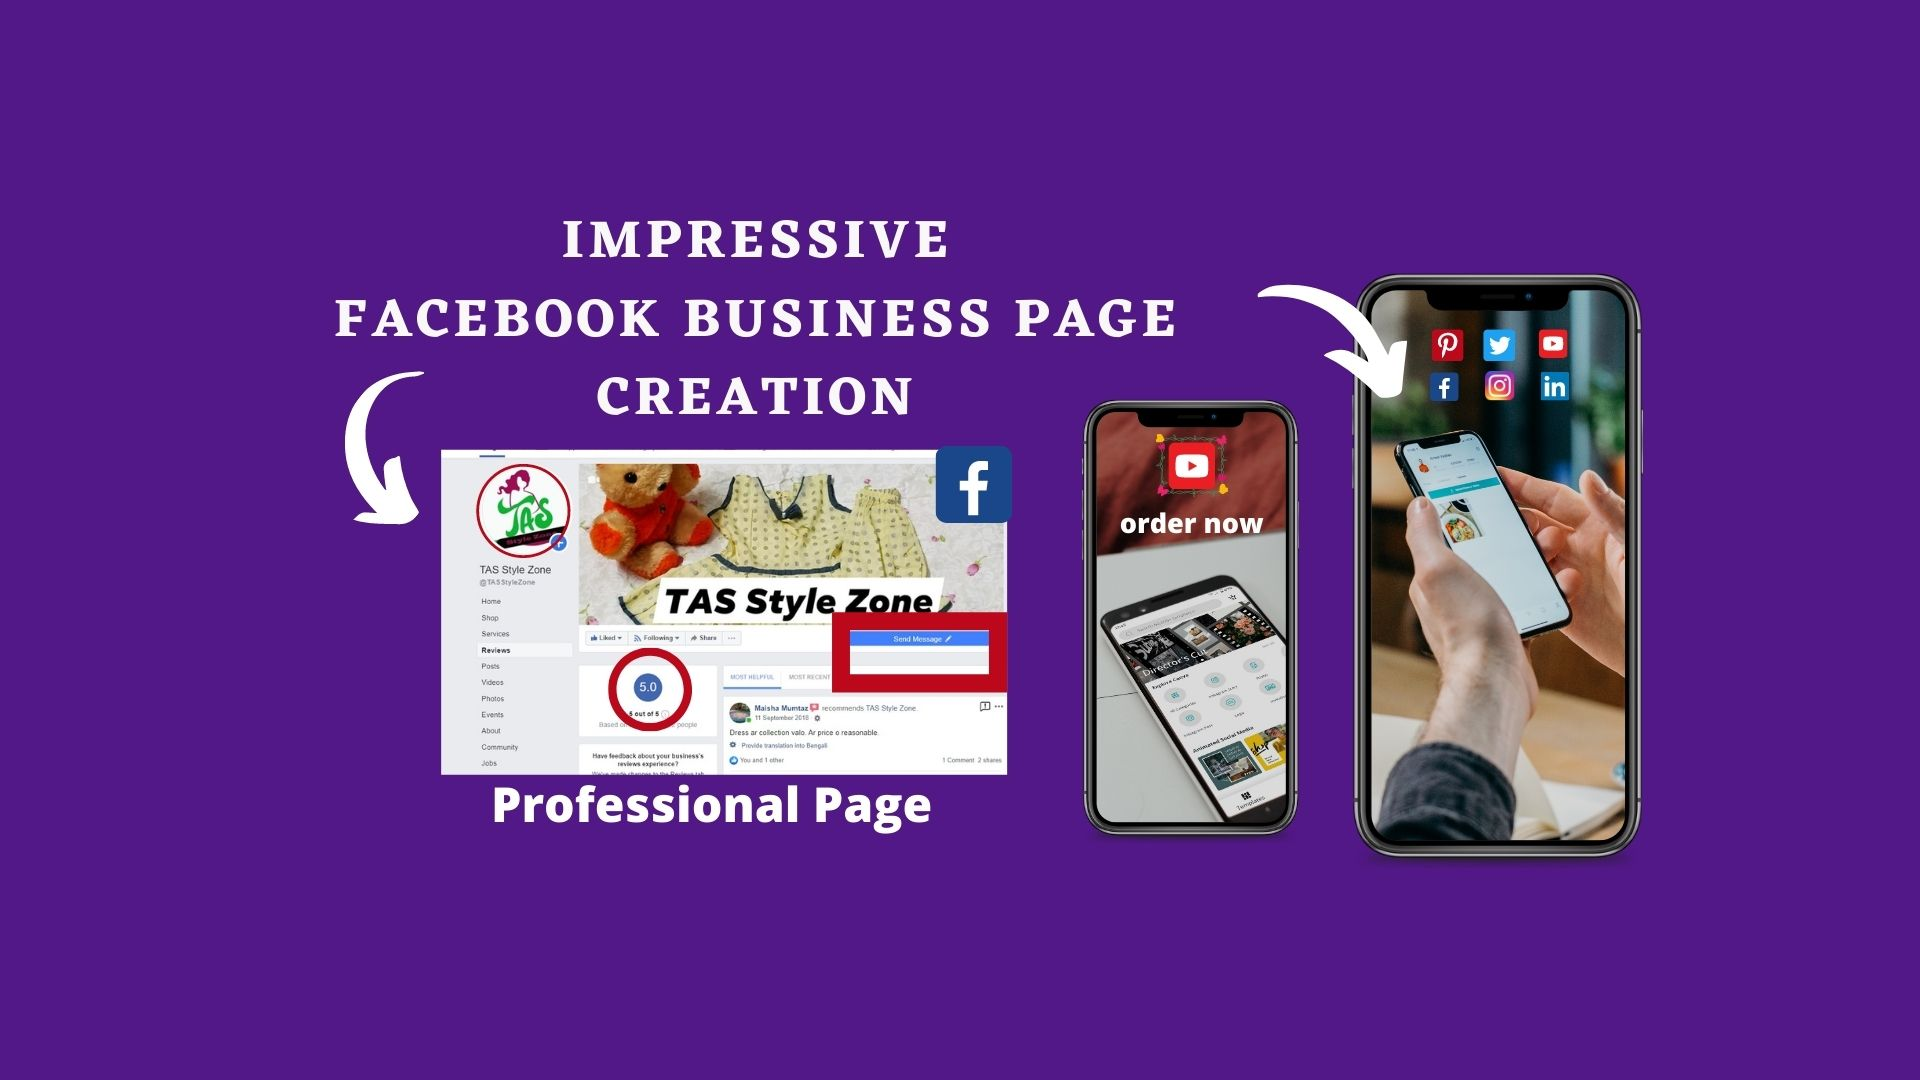 I will create impressive Facebook business page with professional set up